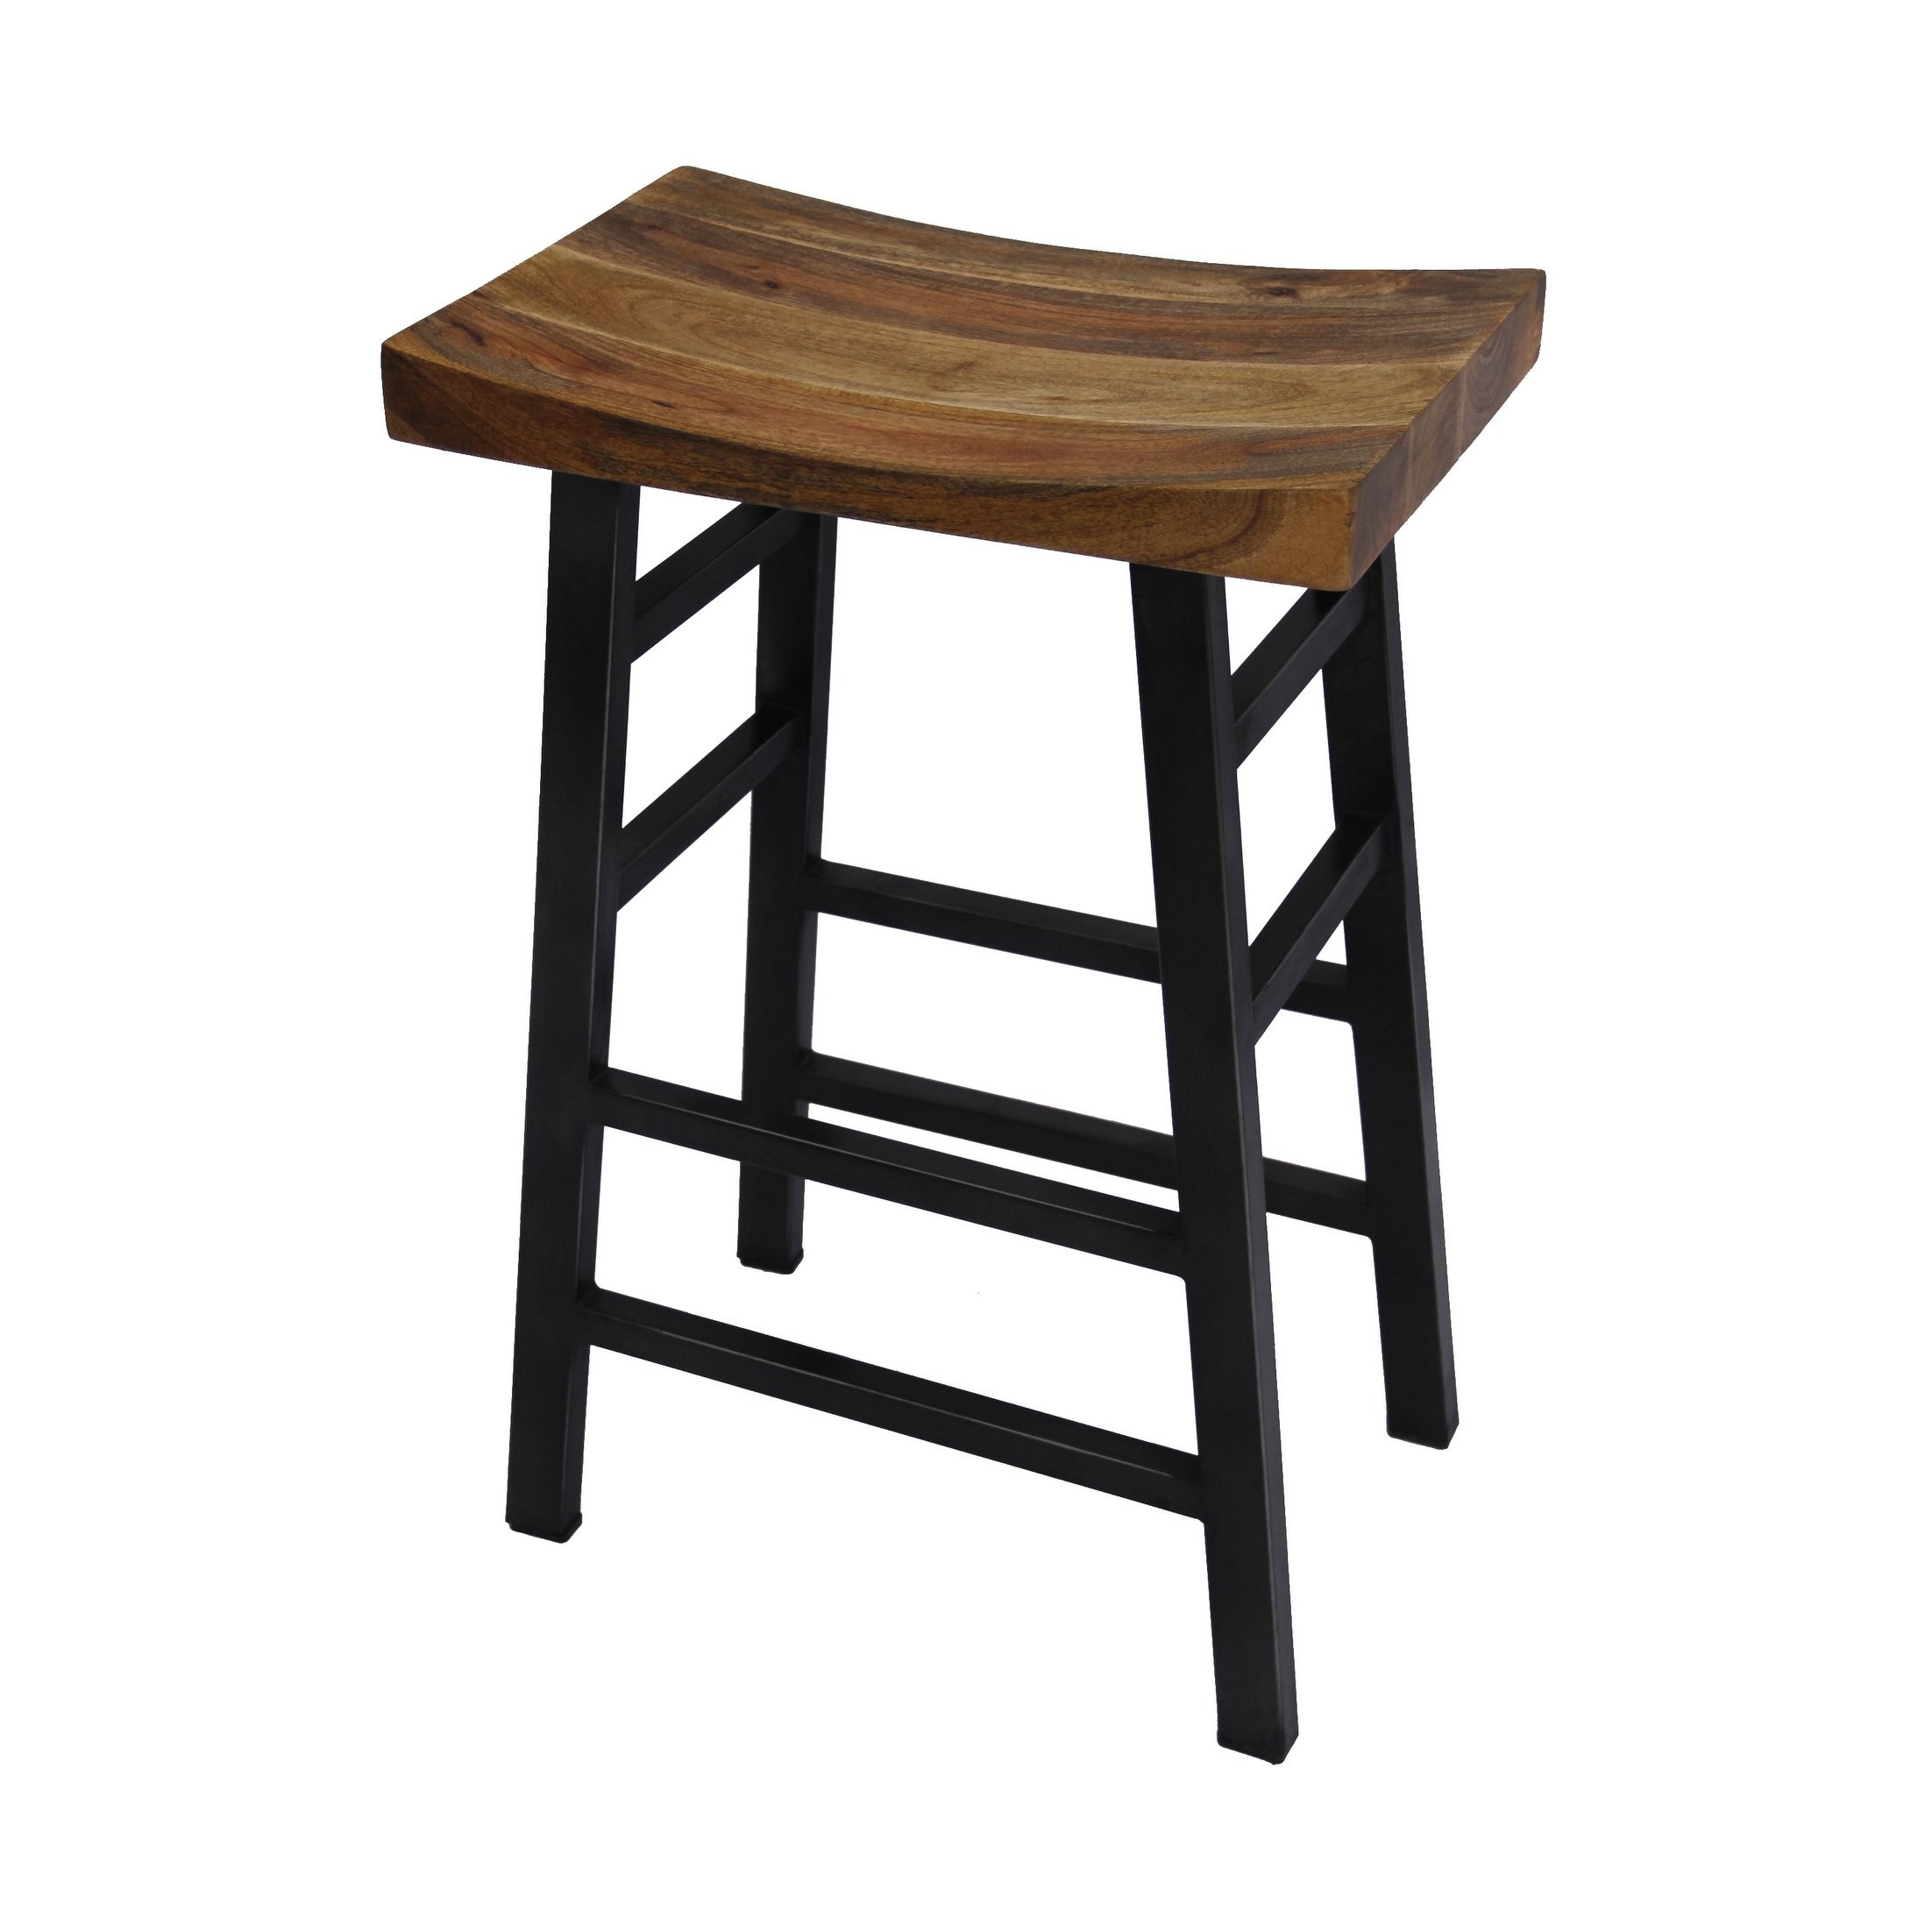 The Urban Port Wooden Saddle Seat 30 Inch Bar Stool With Ladder Base Brown And Black